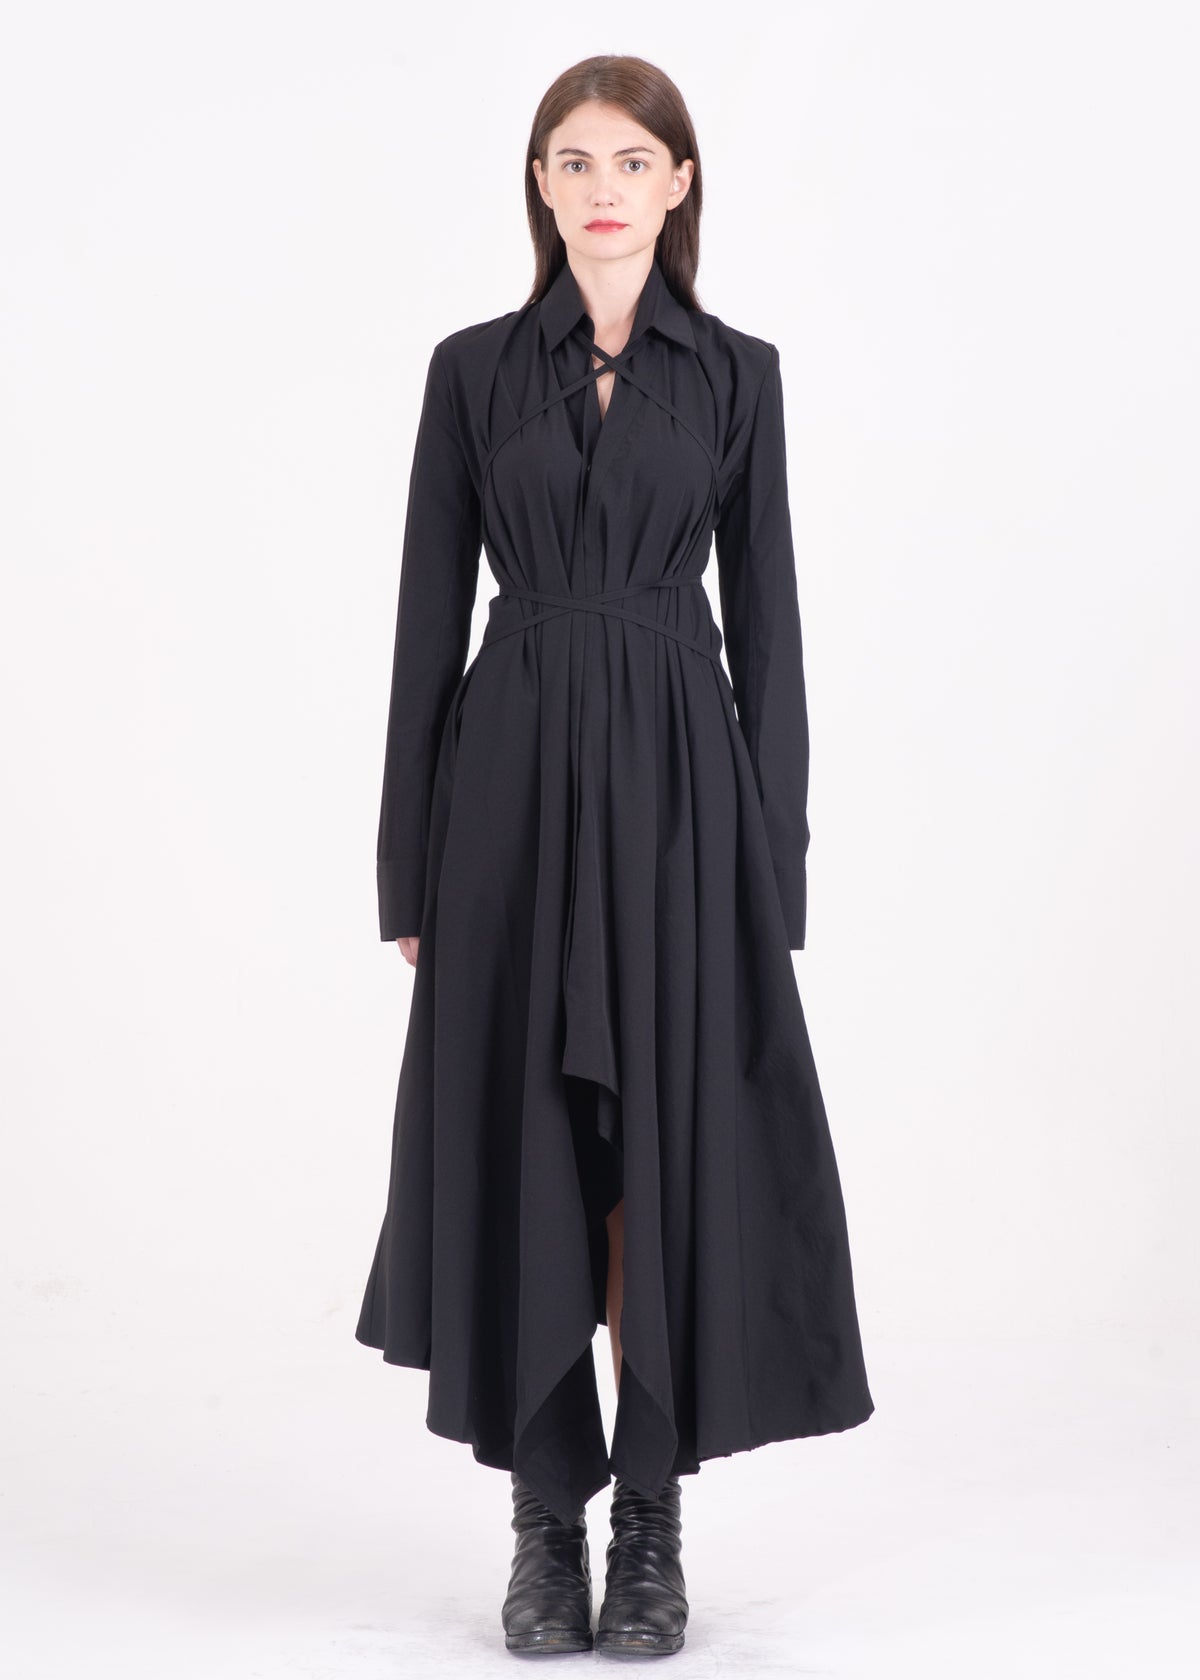 Image of Multi-Way Asymmetric Lace Up Shirt Dress Black